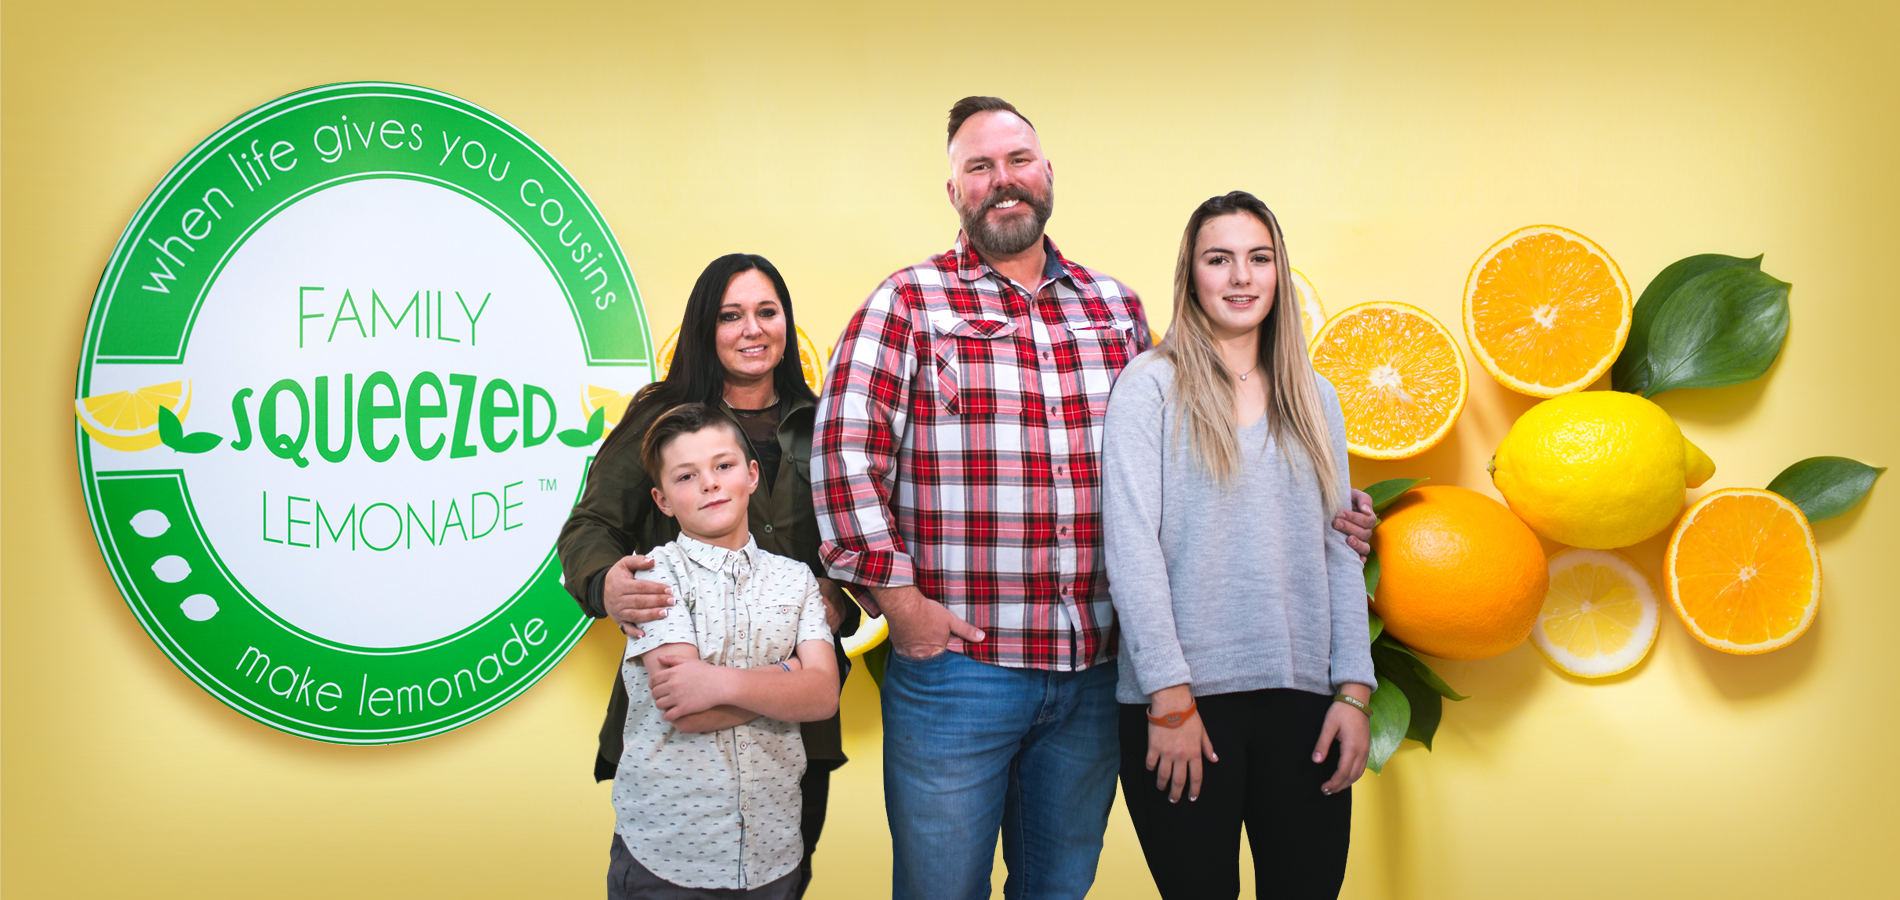 Family Squeezed Lemonade blog header